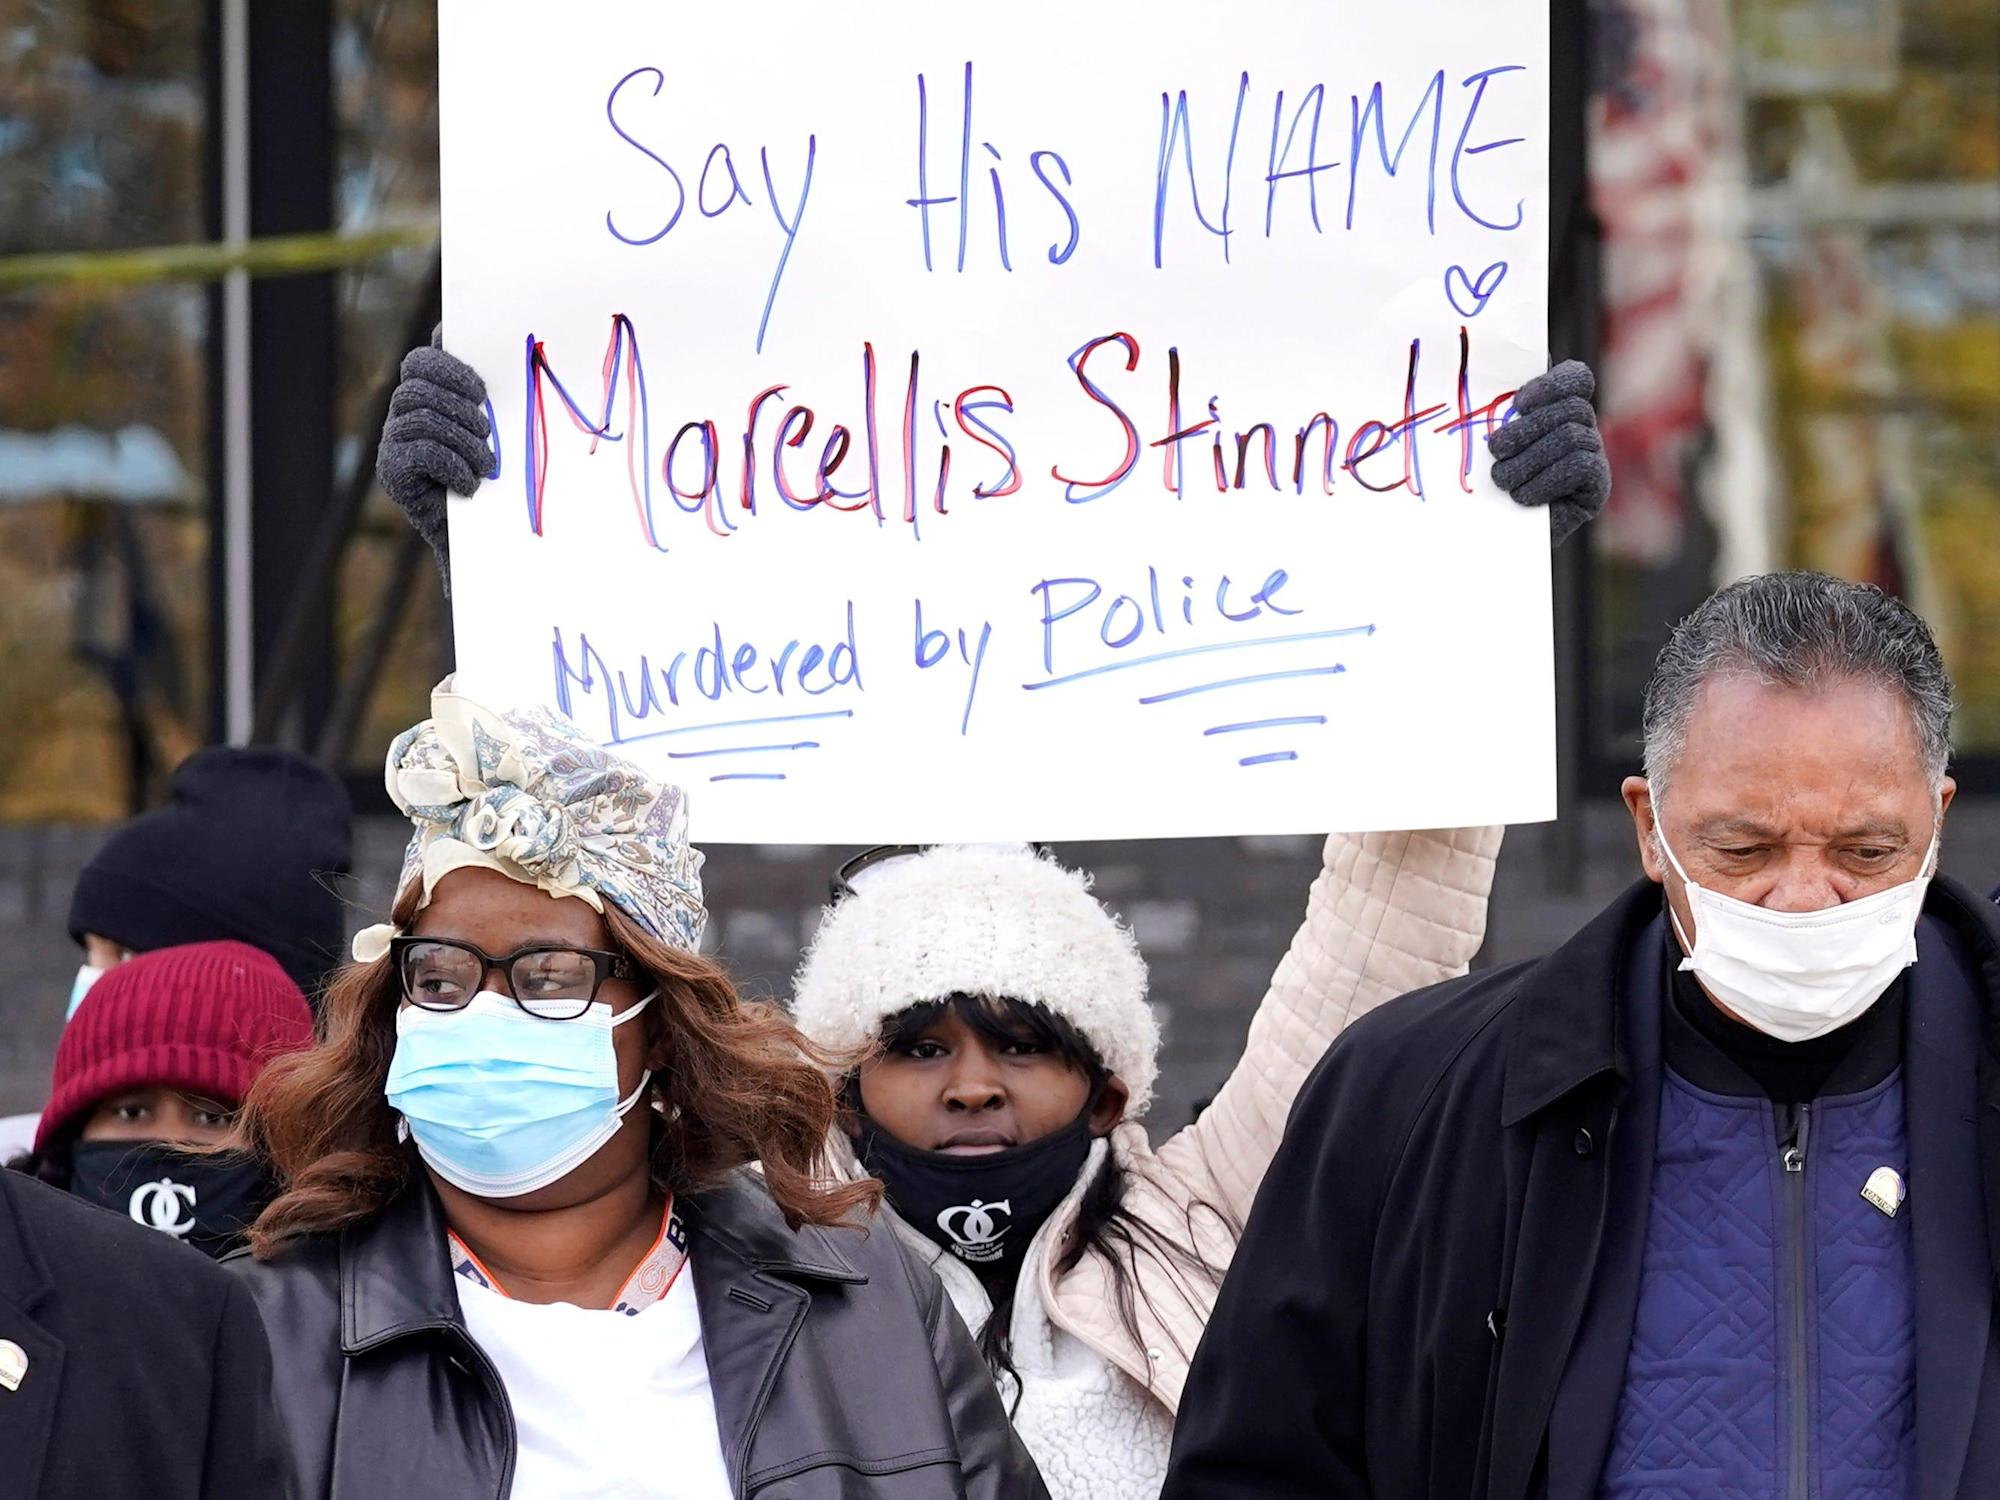 Illinois officers who fatally shot a Black teen left him to bleed out on the ground for 8 minutes without treatment, his mother alleges in a lawsuit